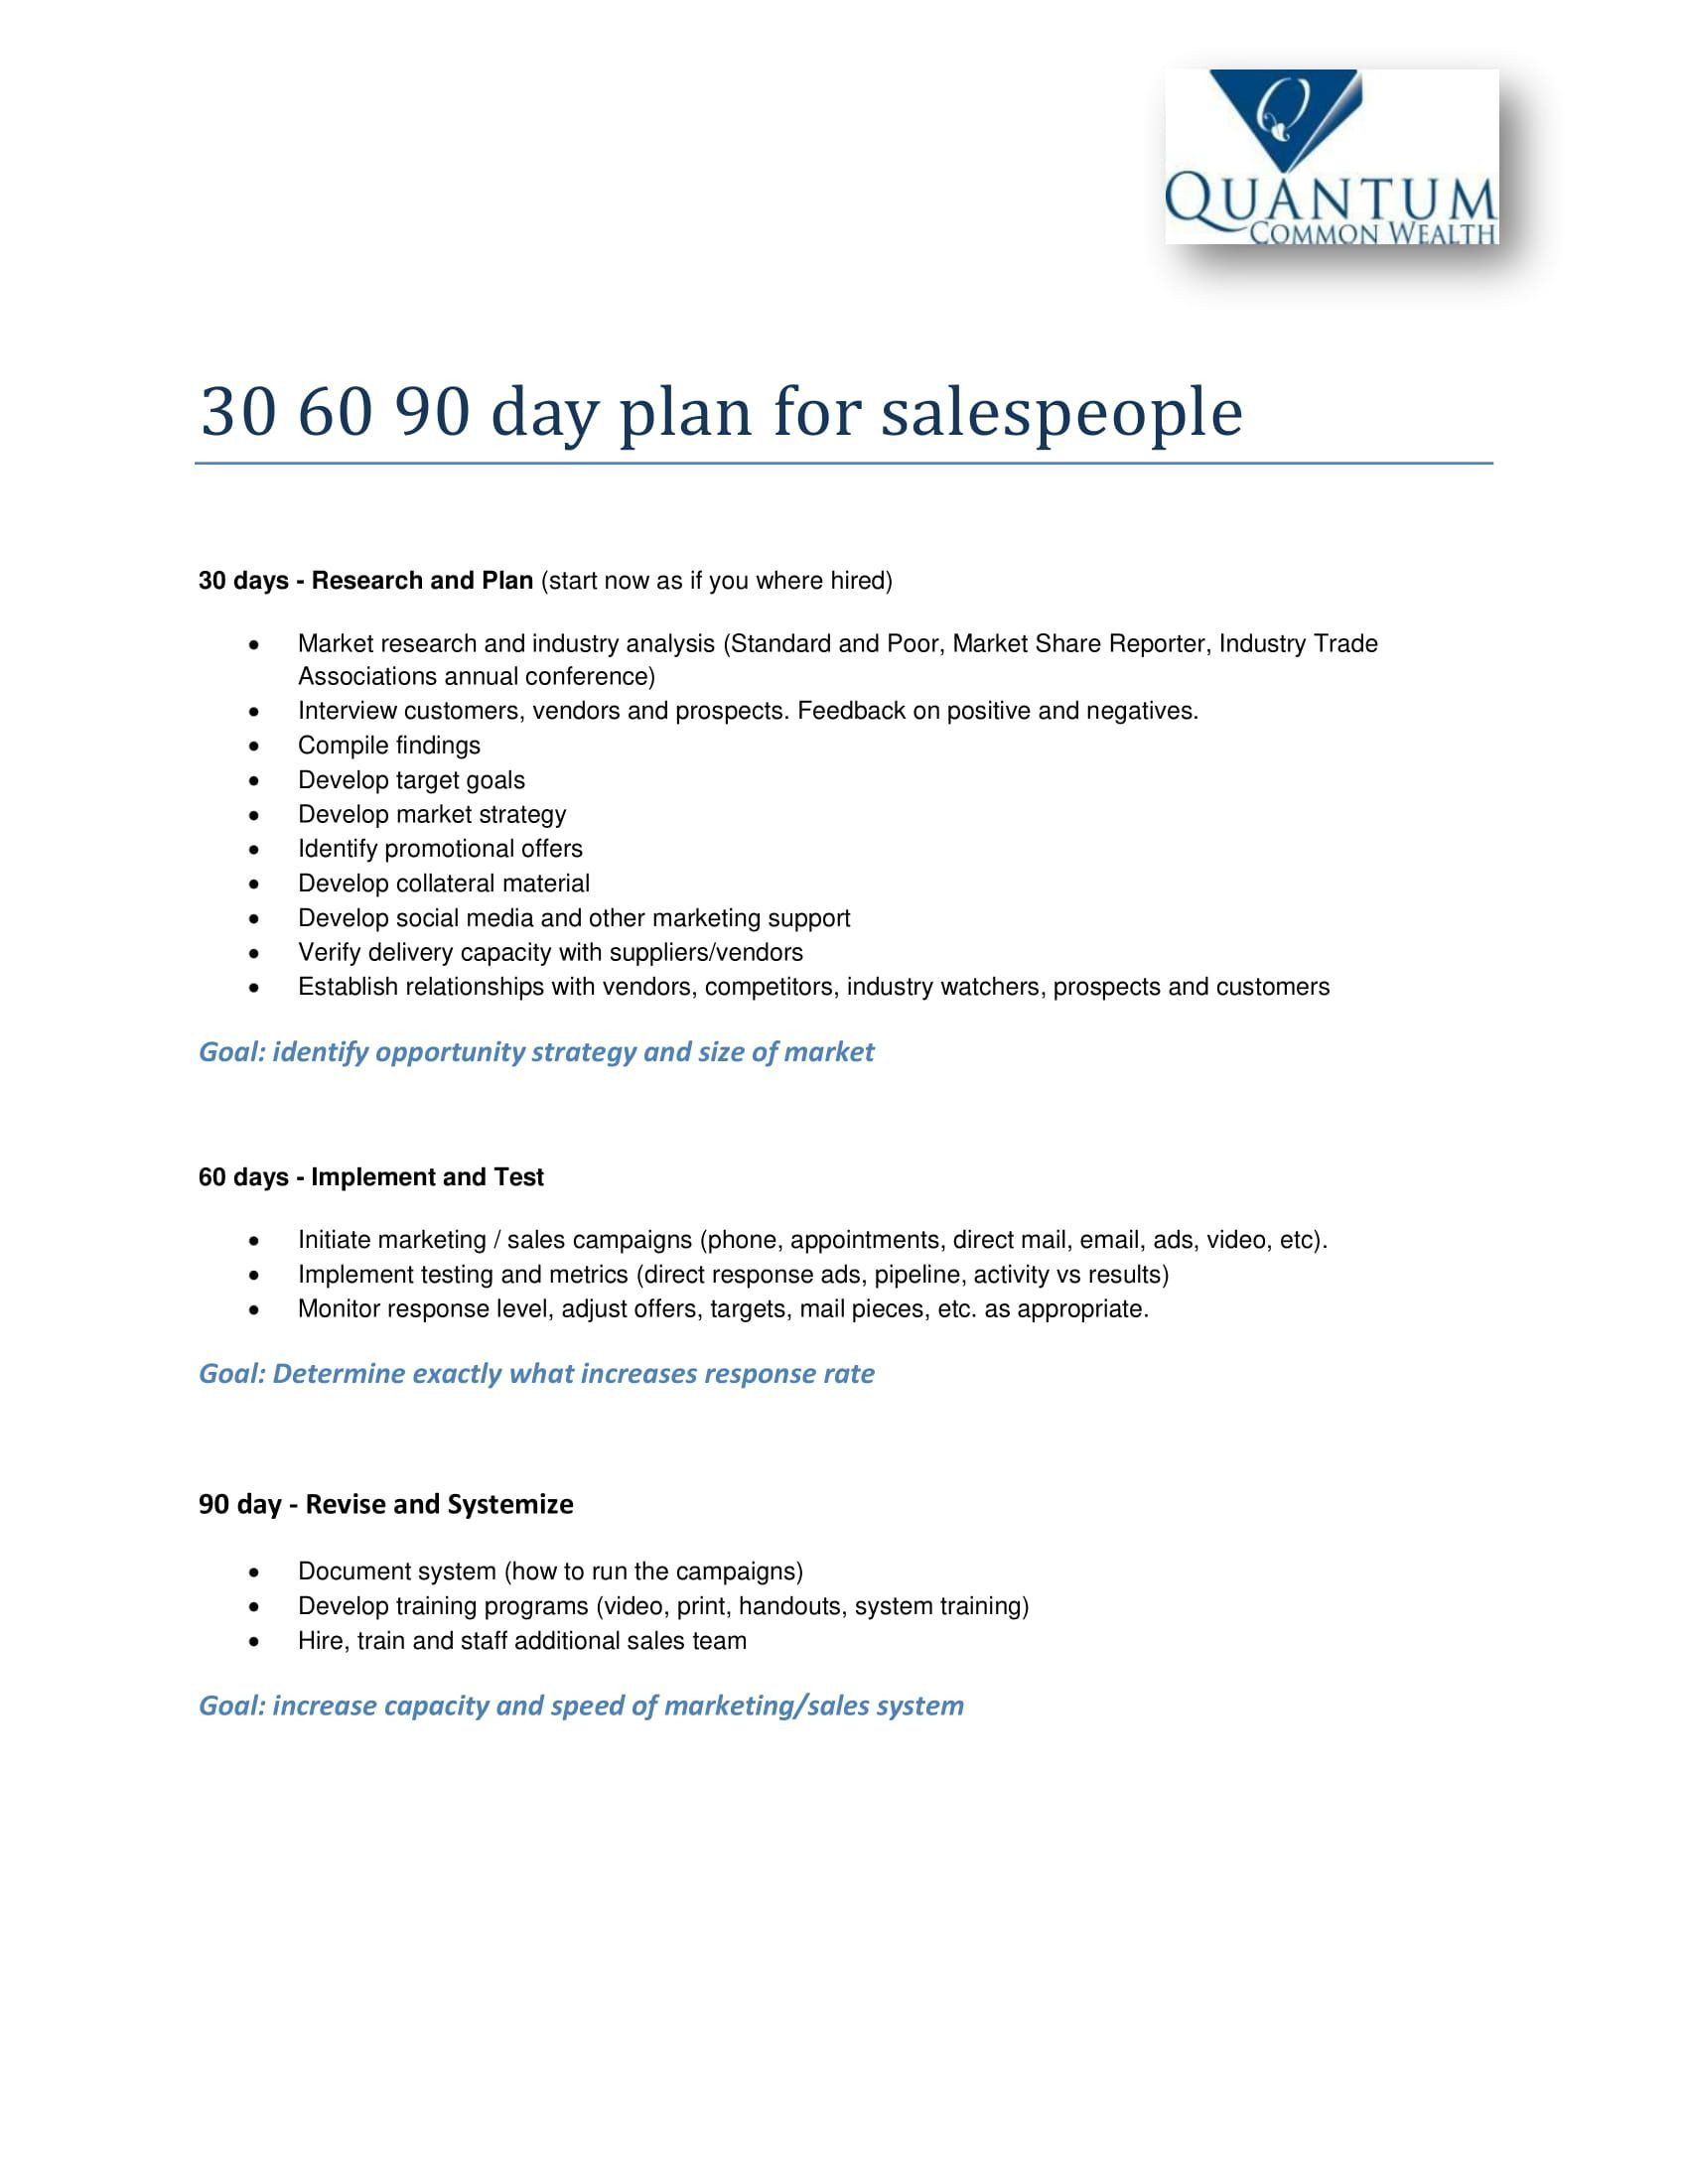 Pin on Action plan template